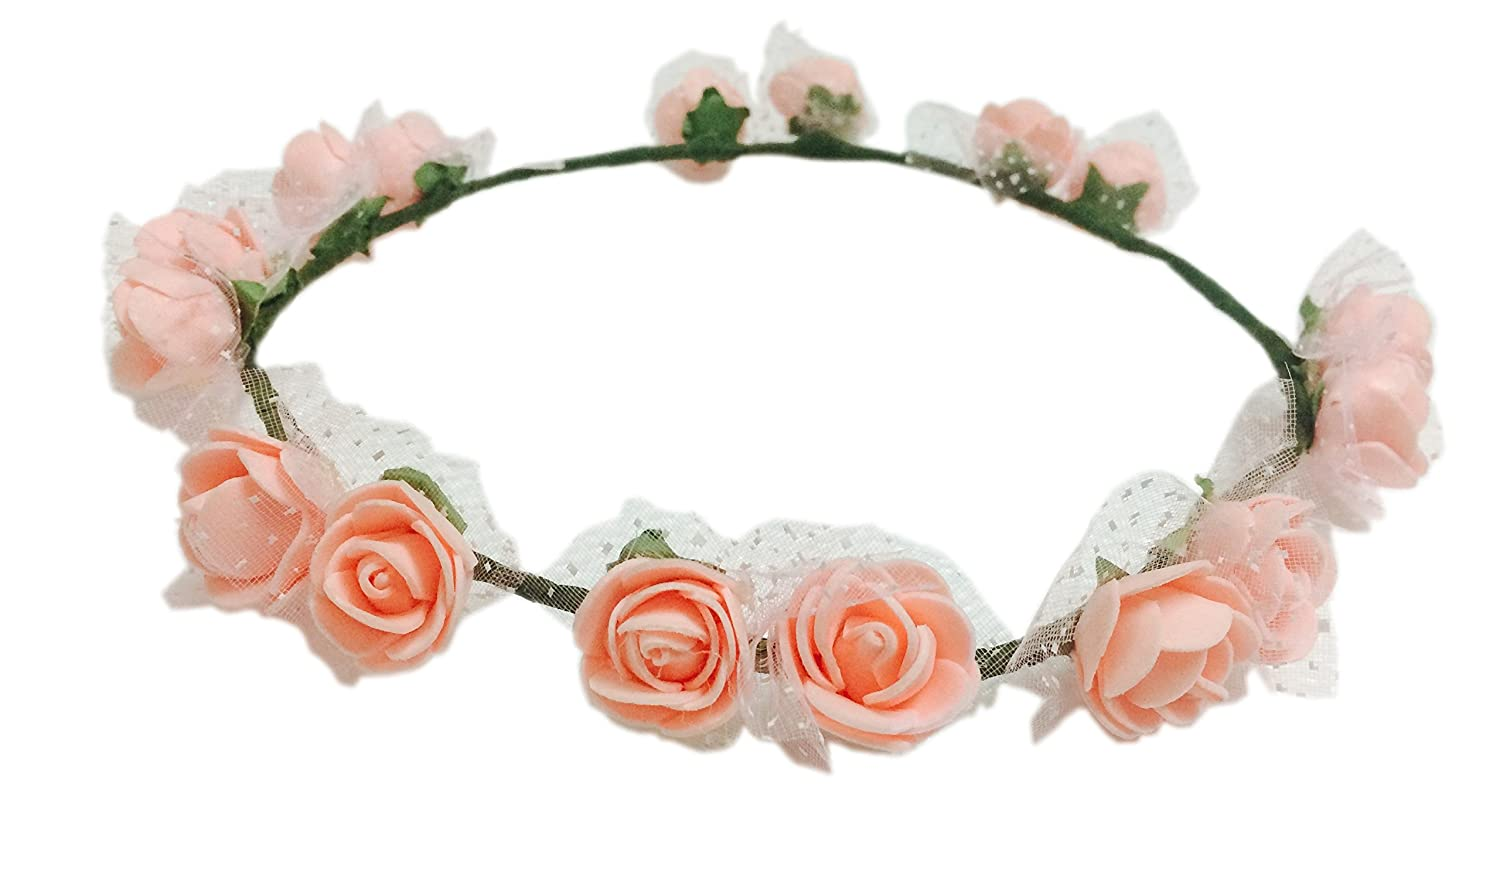 Loops n knots pataka collection peach color tiaracrownheadband for loops n knots pataka collection peach color tiaracrownheadband for girls women hair accessories for birthdayparty wedding amazon jewellery izmirmasajfo